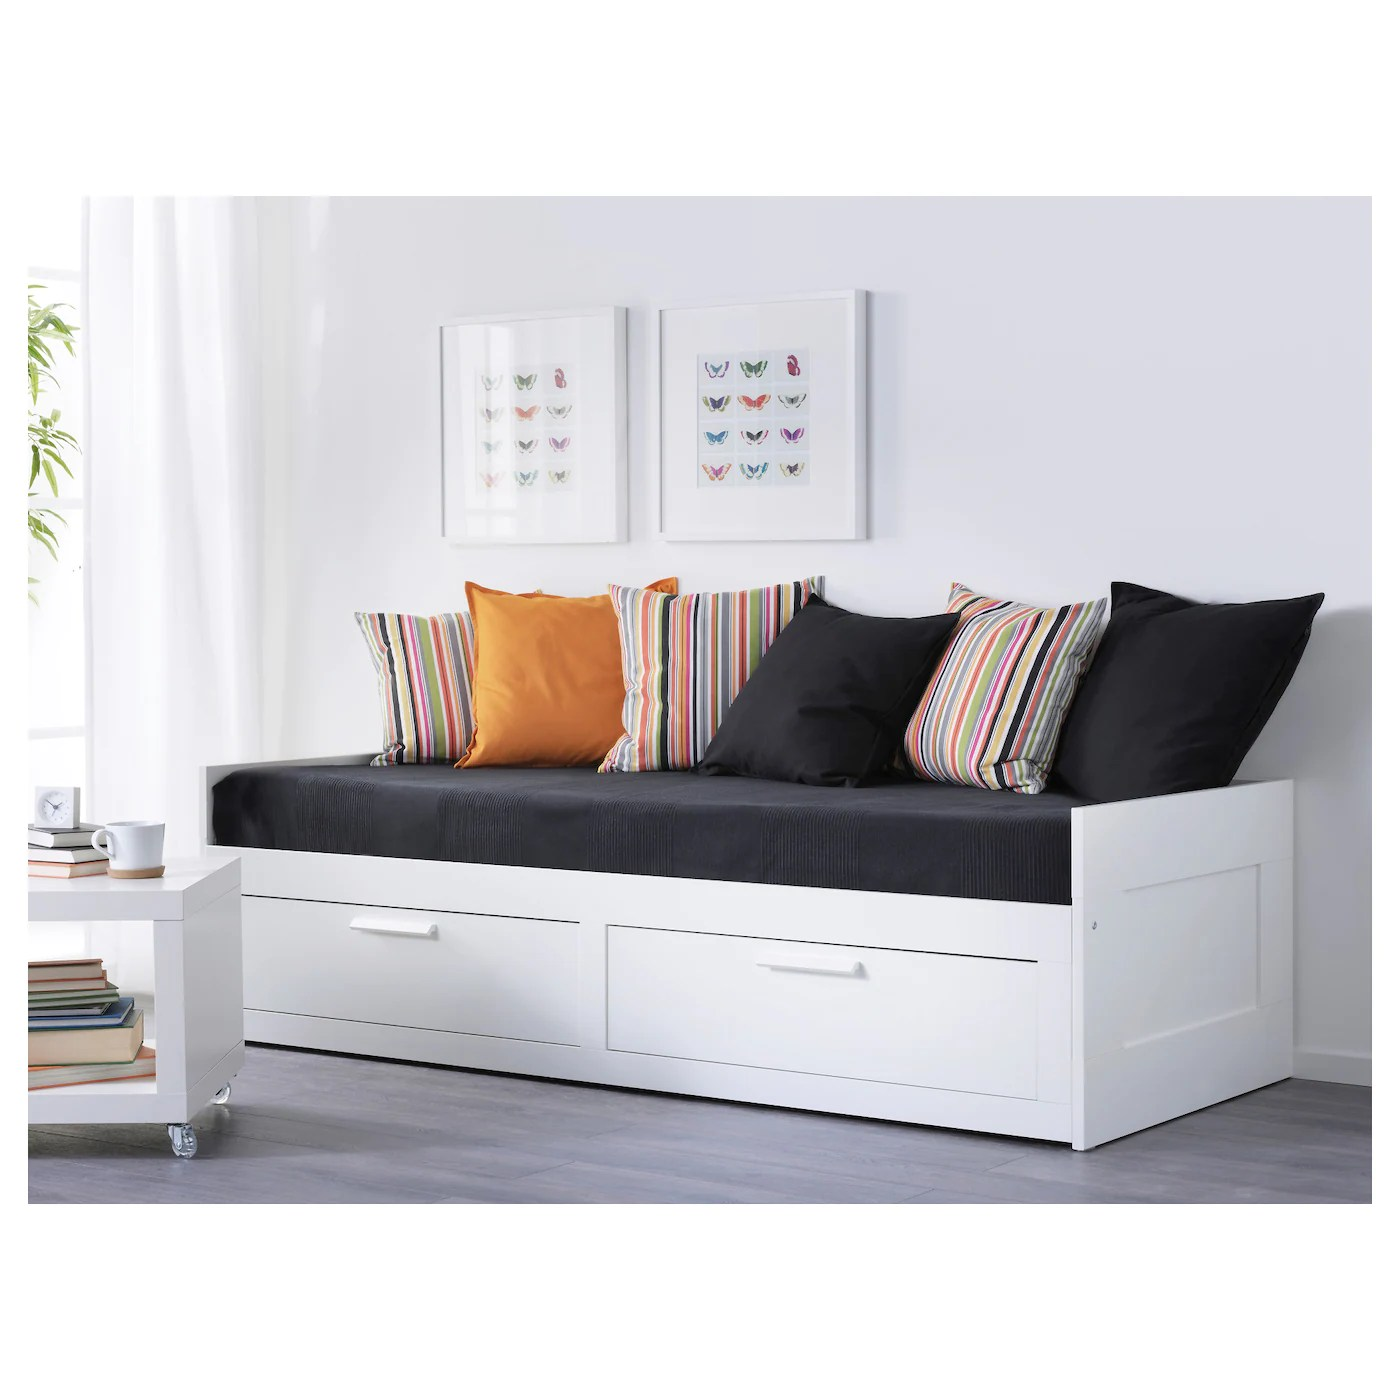 Ikea Brimnes Bett 120x200 Brimnes Day Bed Frame With 2 Drawers White